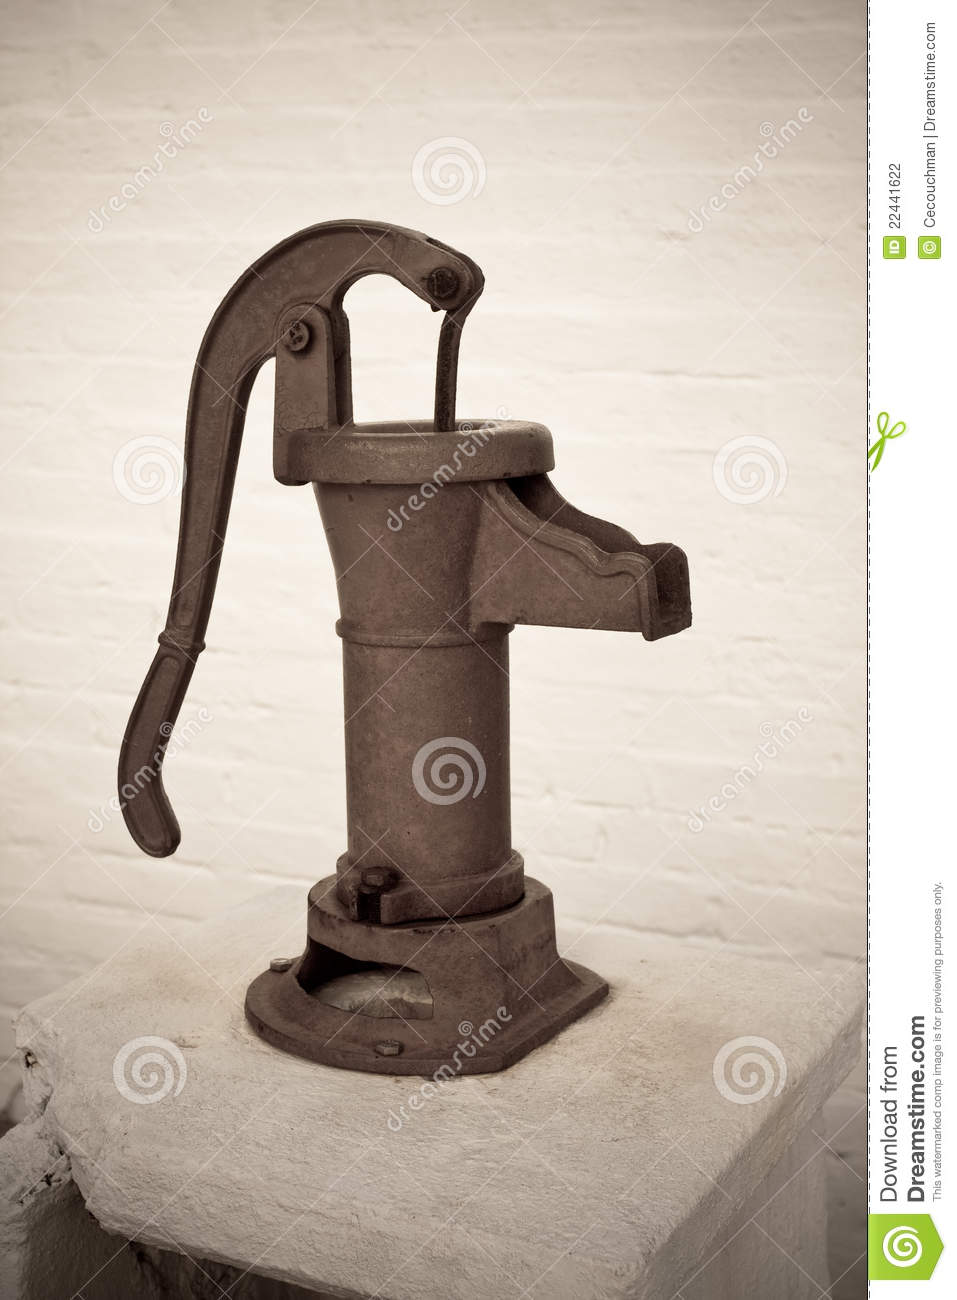 Vintage Hand Water Pump Stock Photography Image 22441622